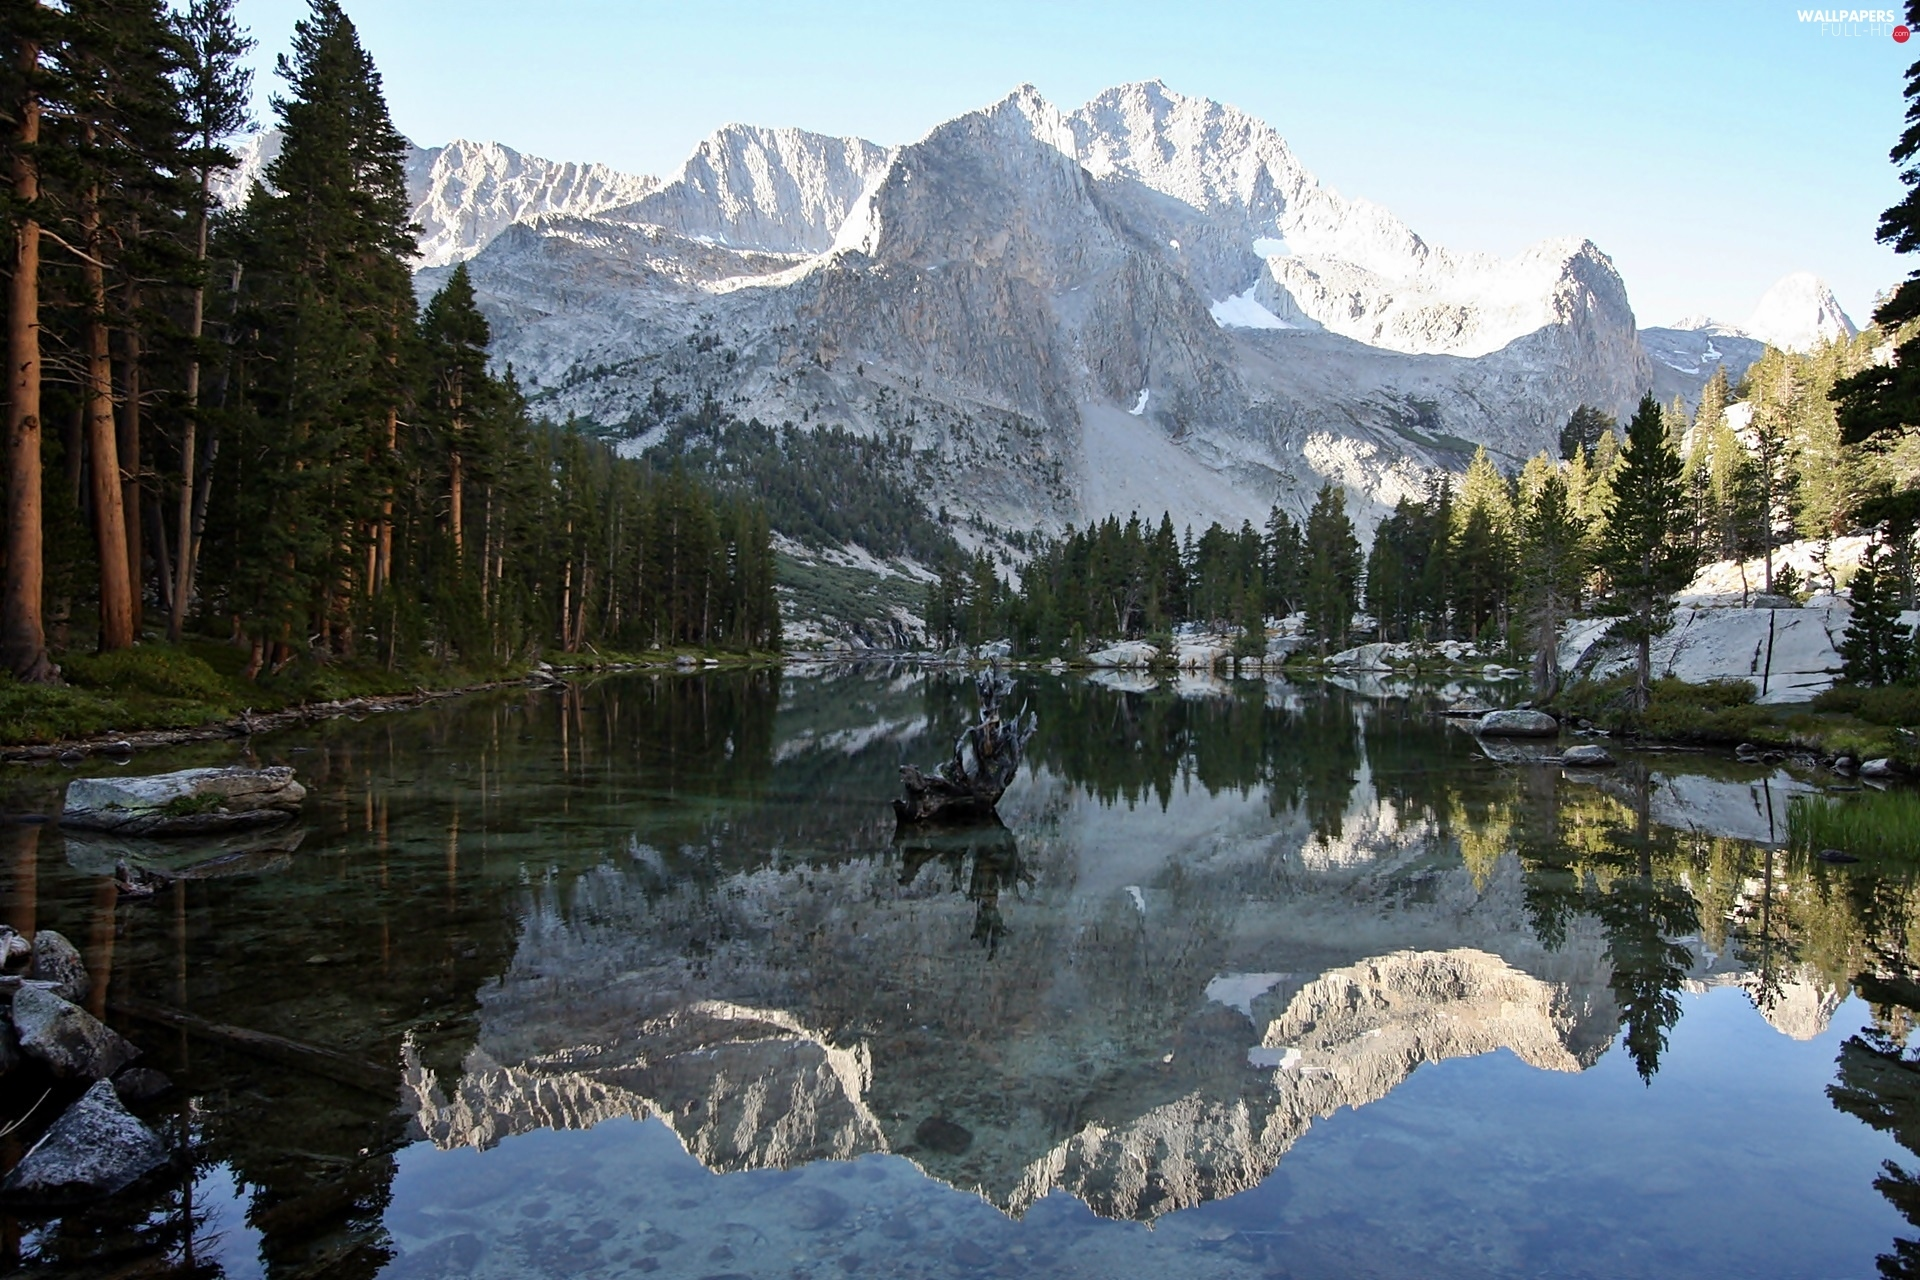 forest, Canyon, lake, Mountains, Park, national, reflection, Kings